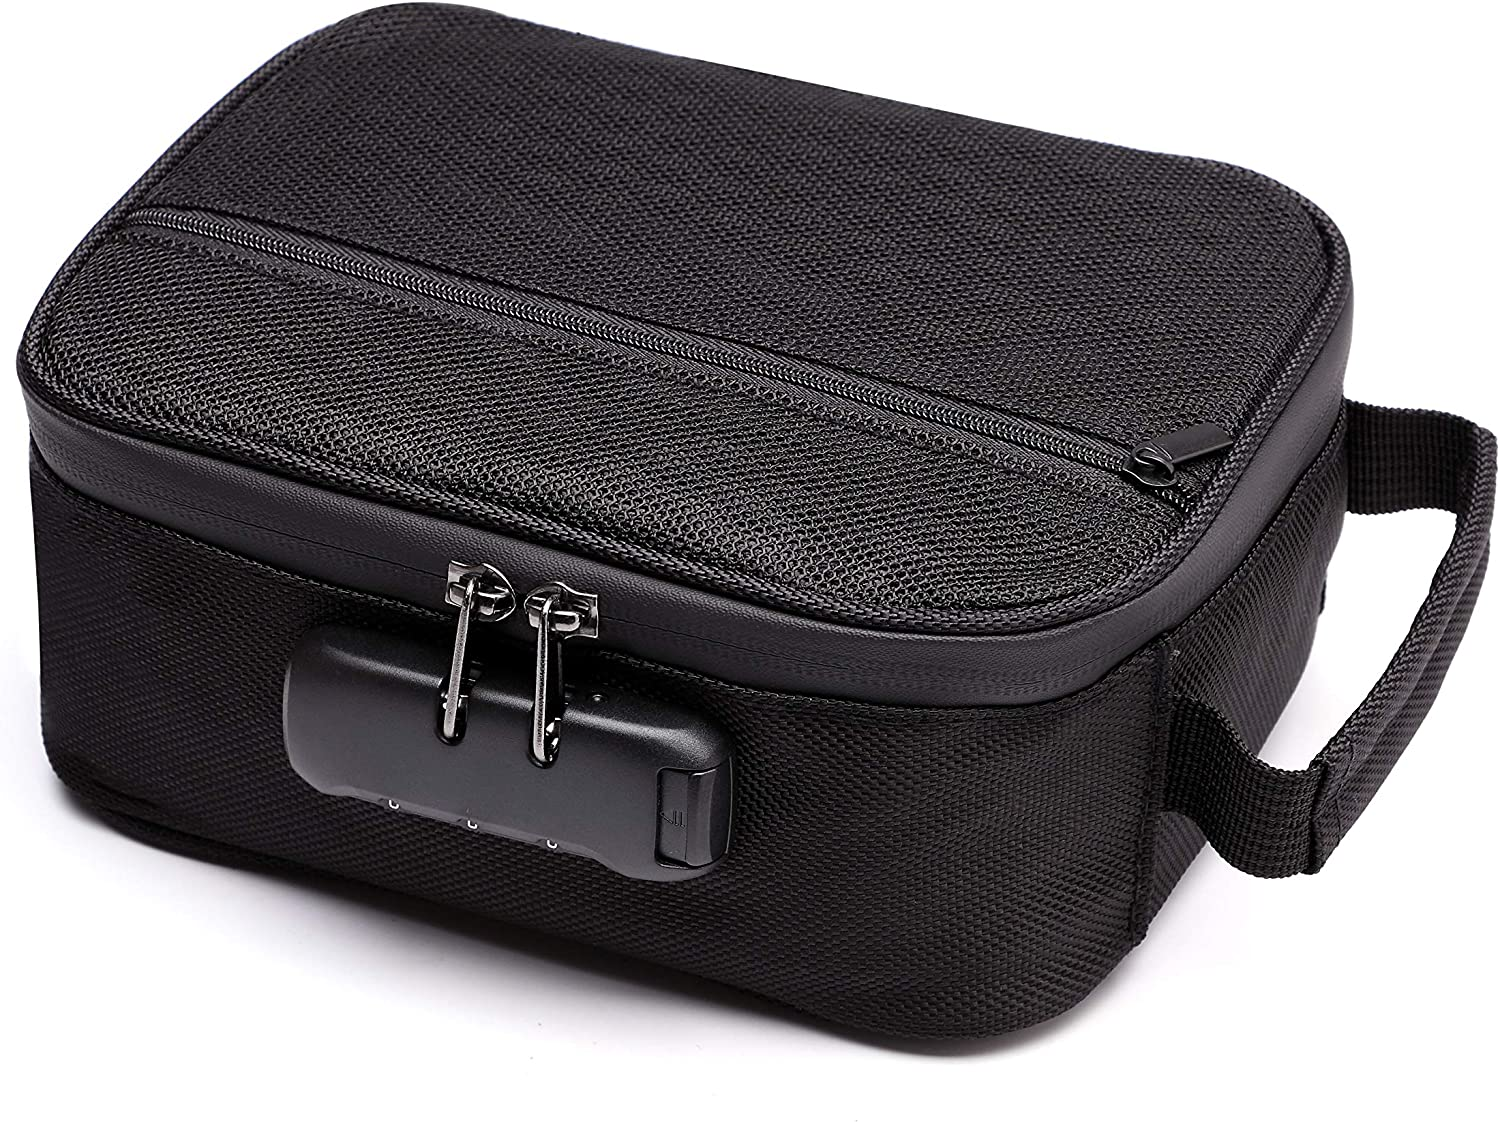 Upgraded Waterproof Smell Proof Bag Case, Stash Bag 8.3x6x3.5 Inch with Strong Combination Protect